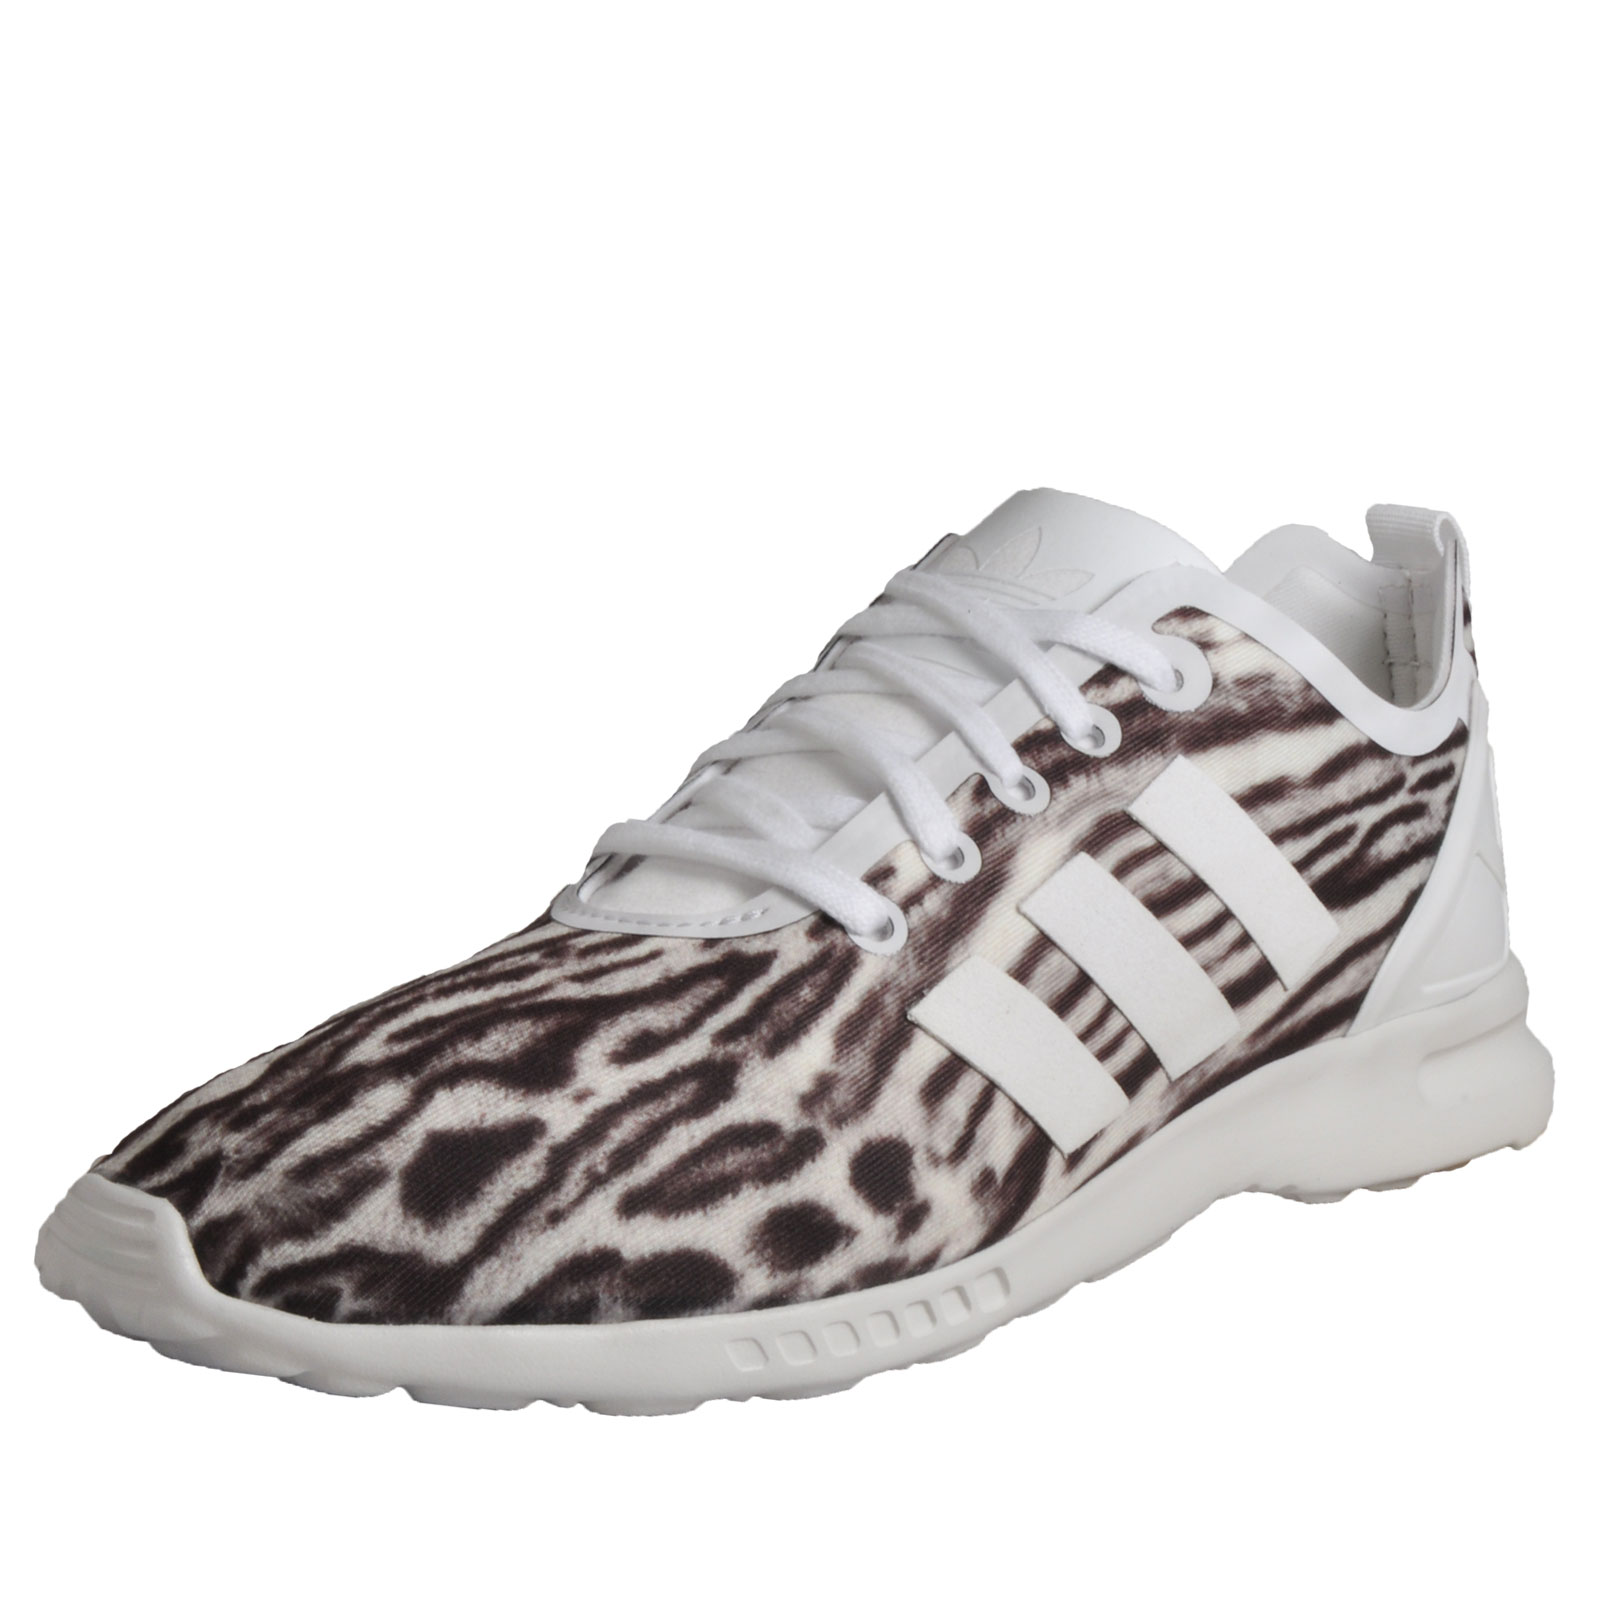 9f7460971 Adidas Originals ZX Flux Adv Smooth Women s Running Fitness Gym Trainers